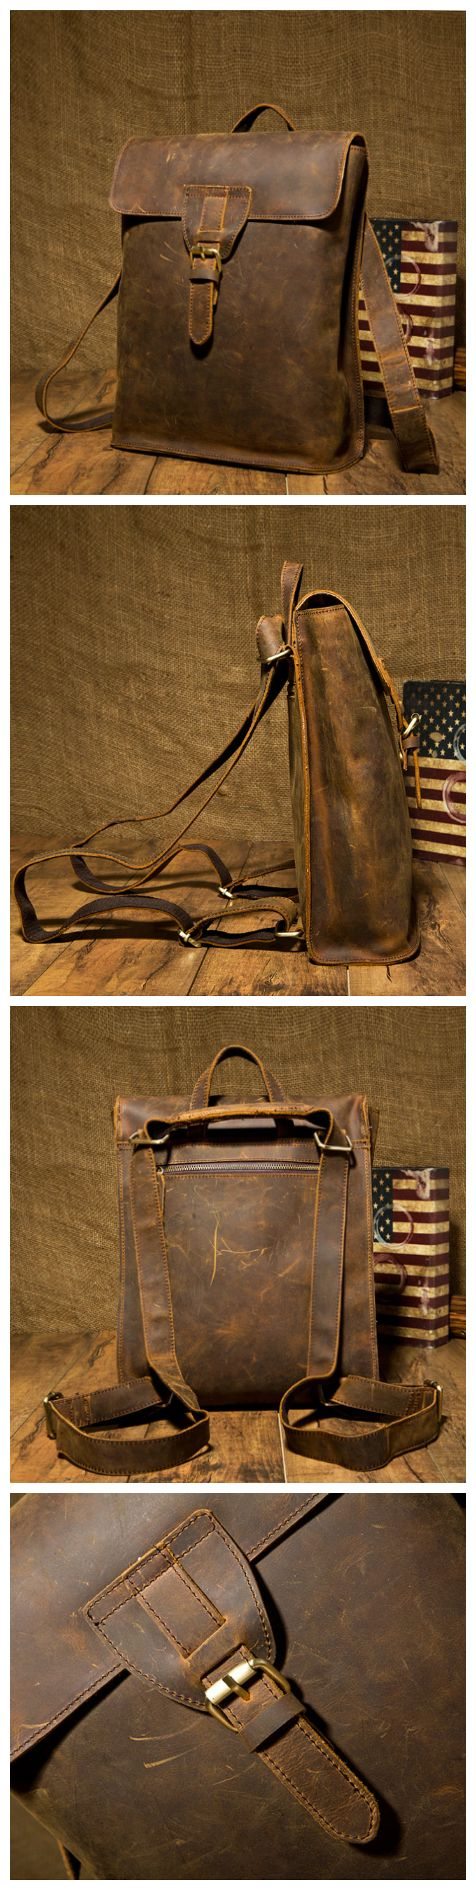 Handmade Leather Backpack /Vintage Leather Macbook Briefcase 2-in-1 Leather School Bag Backpack (M101) - Thumbnail 4